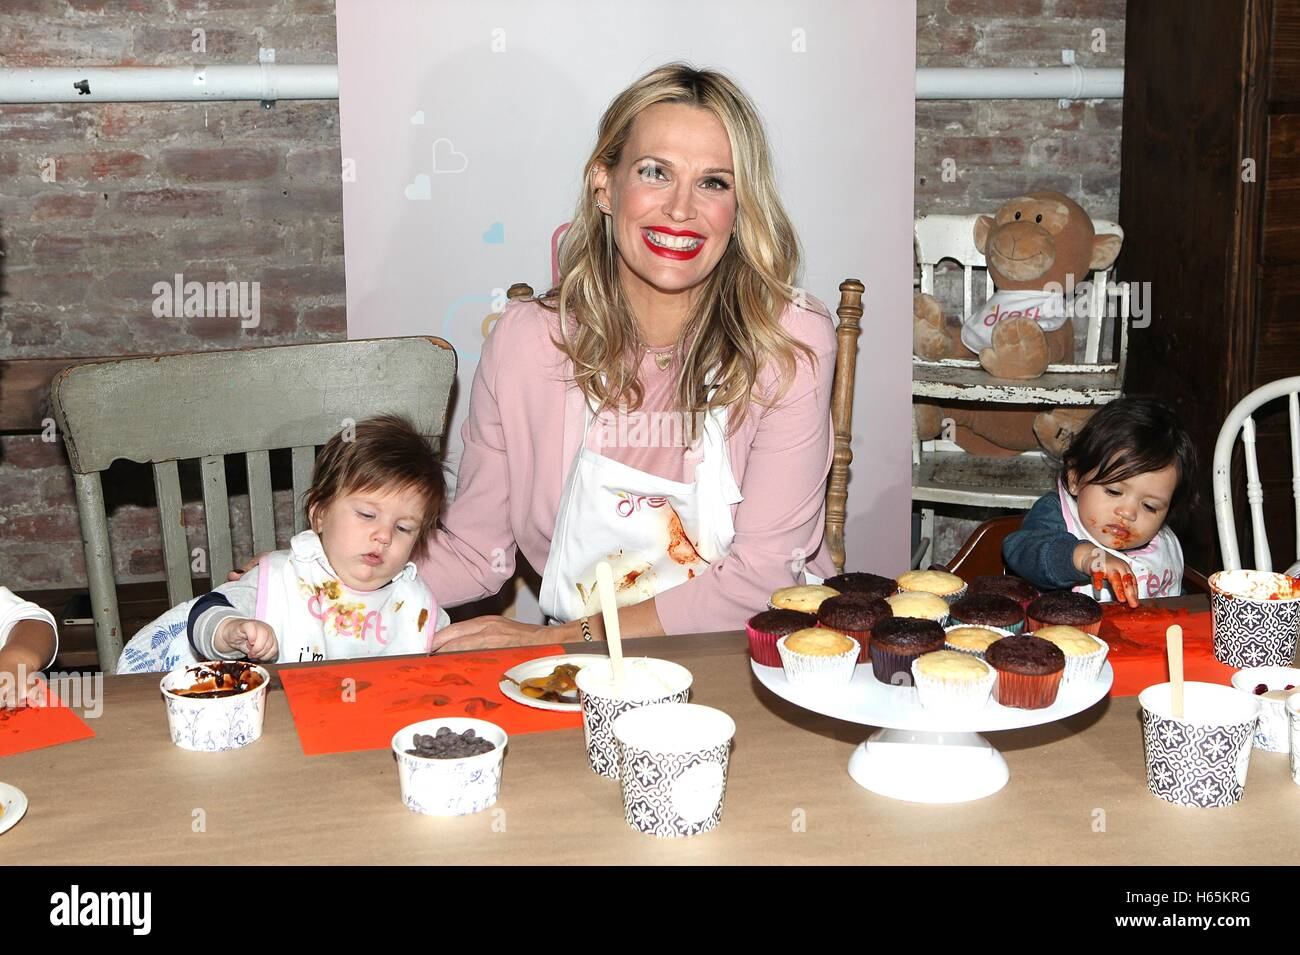 New York, NY, USA. 25th Oct, 2016. Model Molly Sims attends America's Messiest Baby Contest Launch at Maman - Stock Image